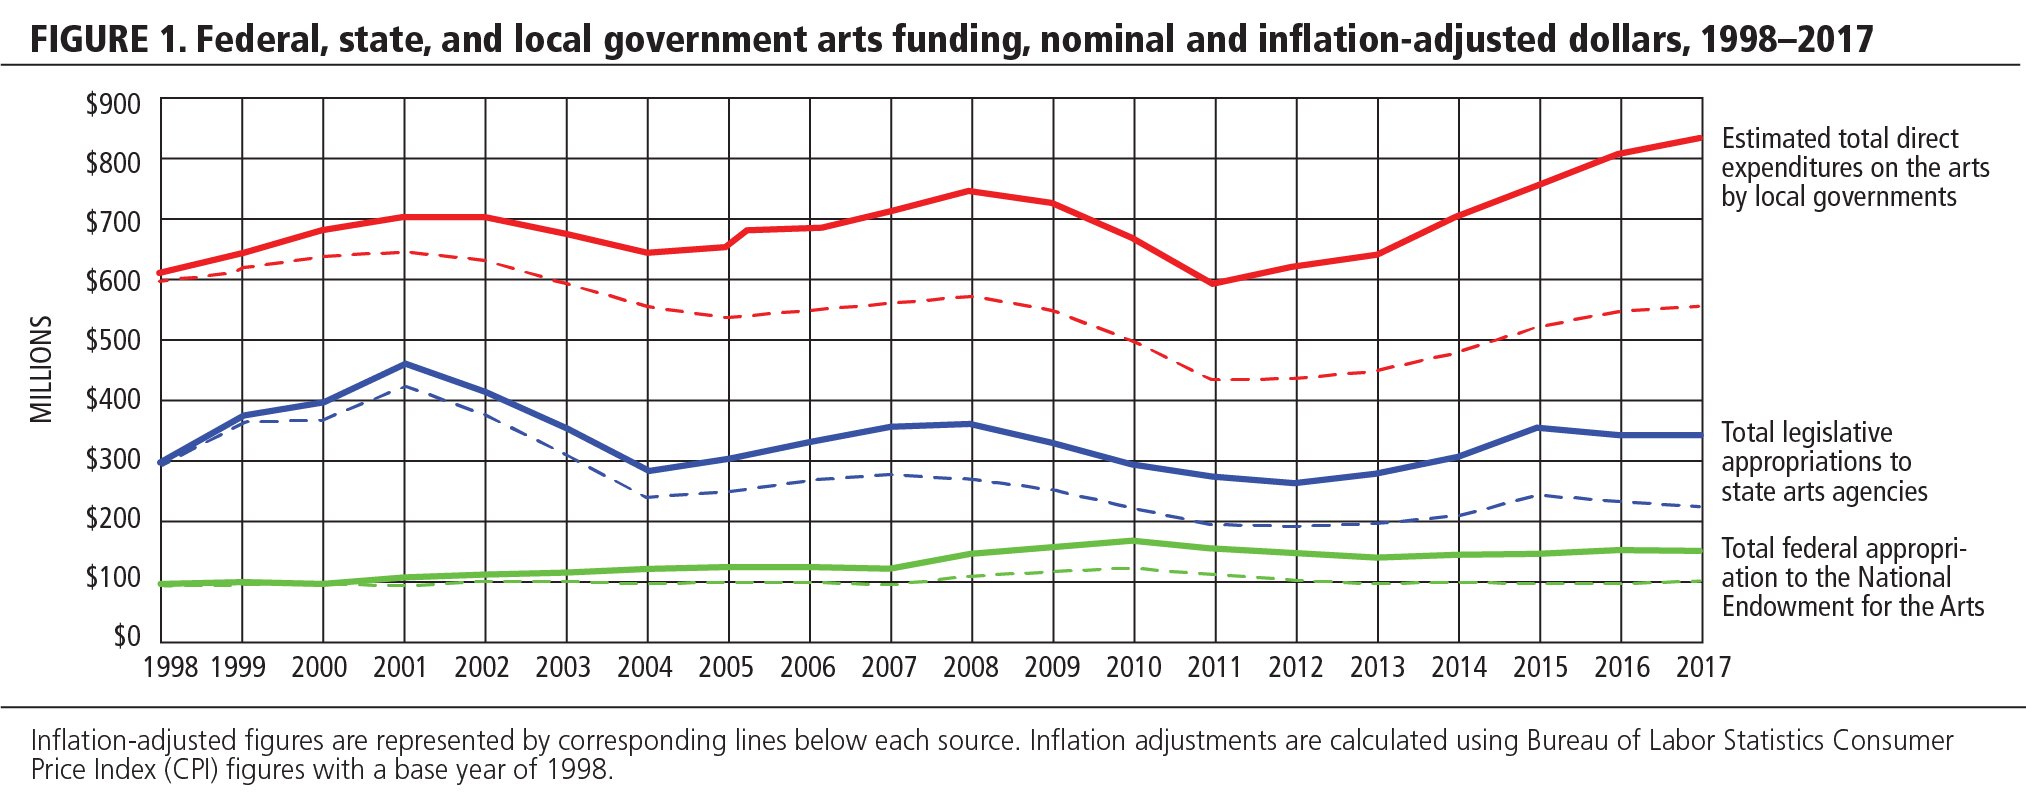 FIGURE 1. Federal, state, and local government arts funding, nominal and inflation-adjusted dollars, 1998-2017